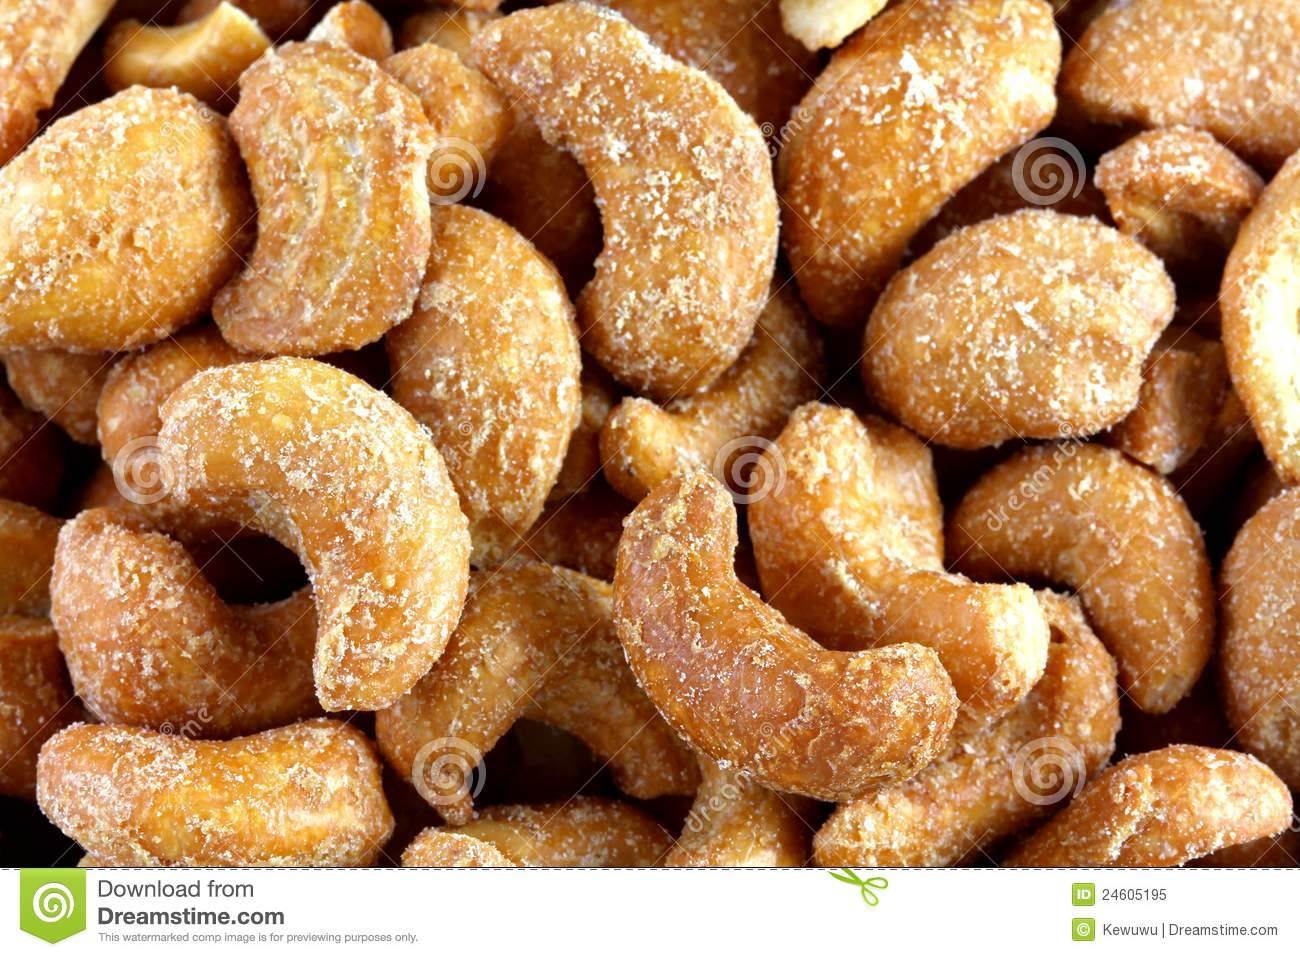 Roasted And Salted Cashew Nuts Royalty Free Stock Photo ...